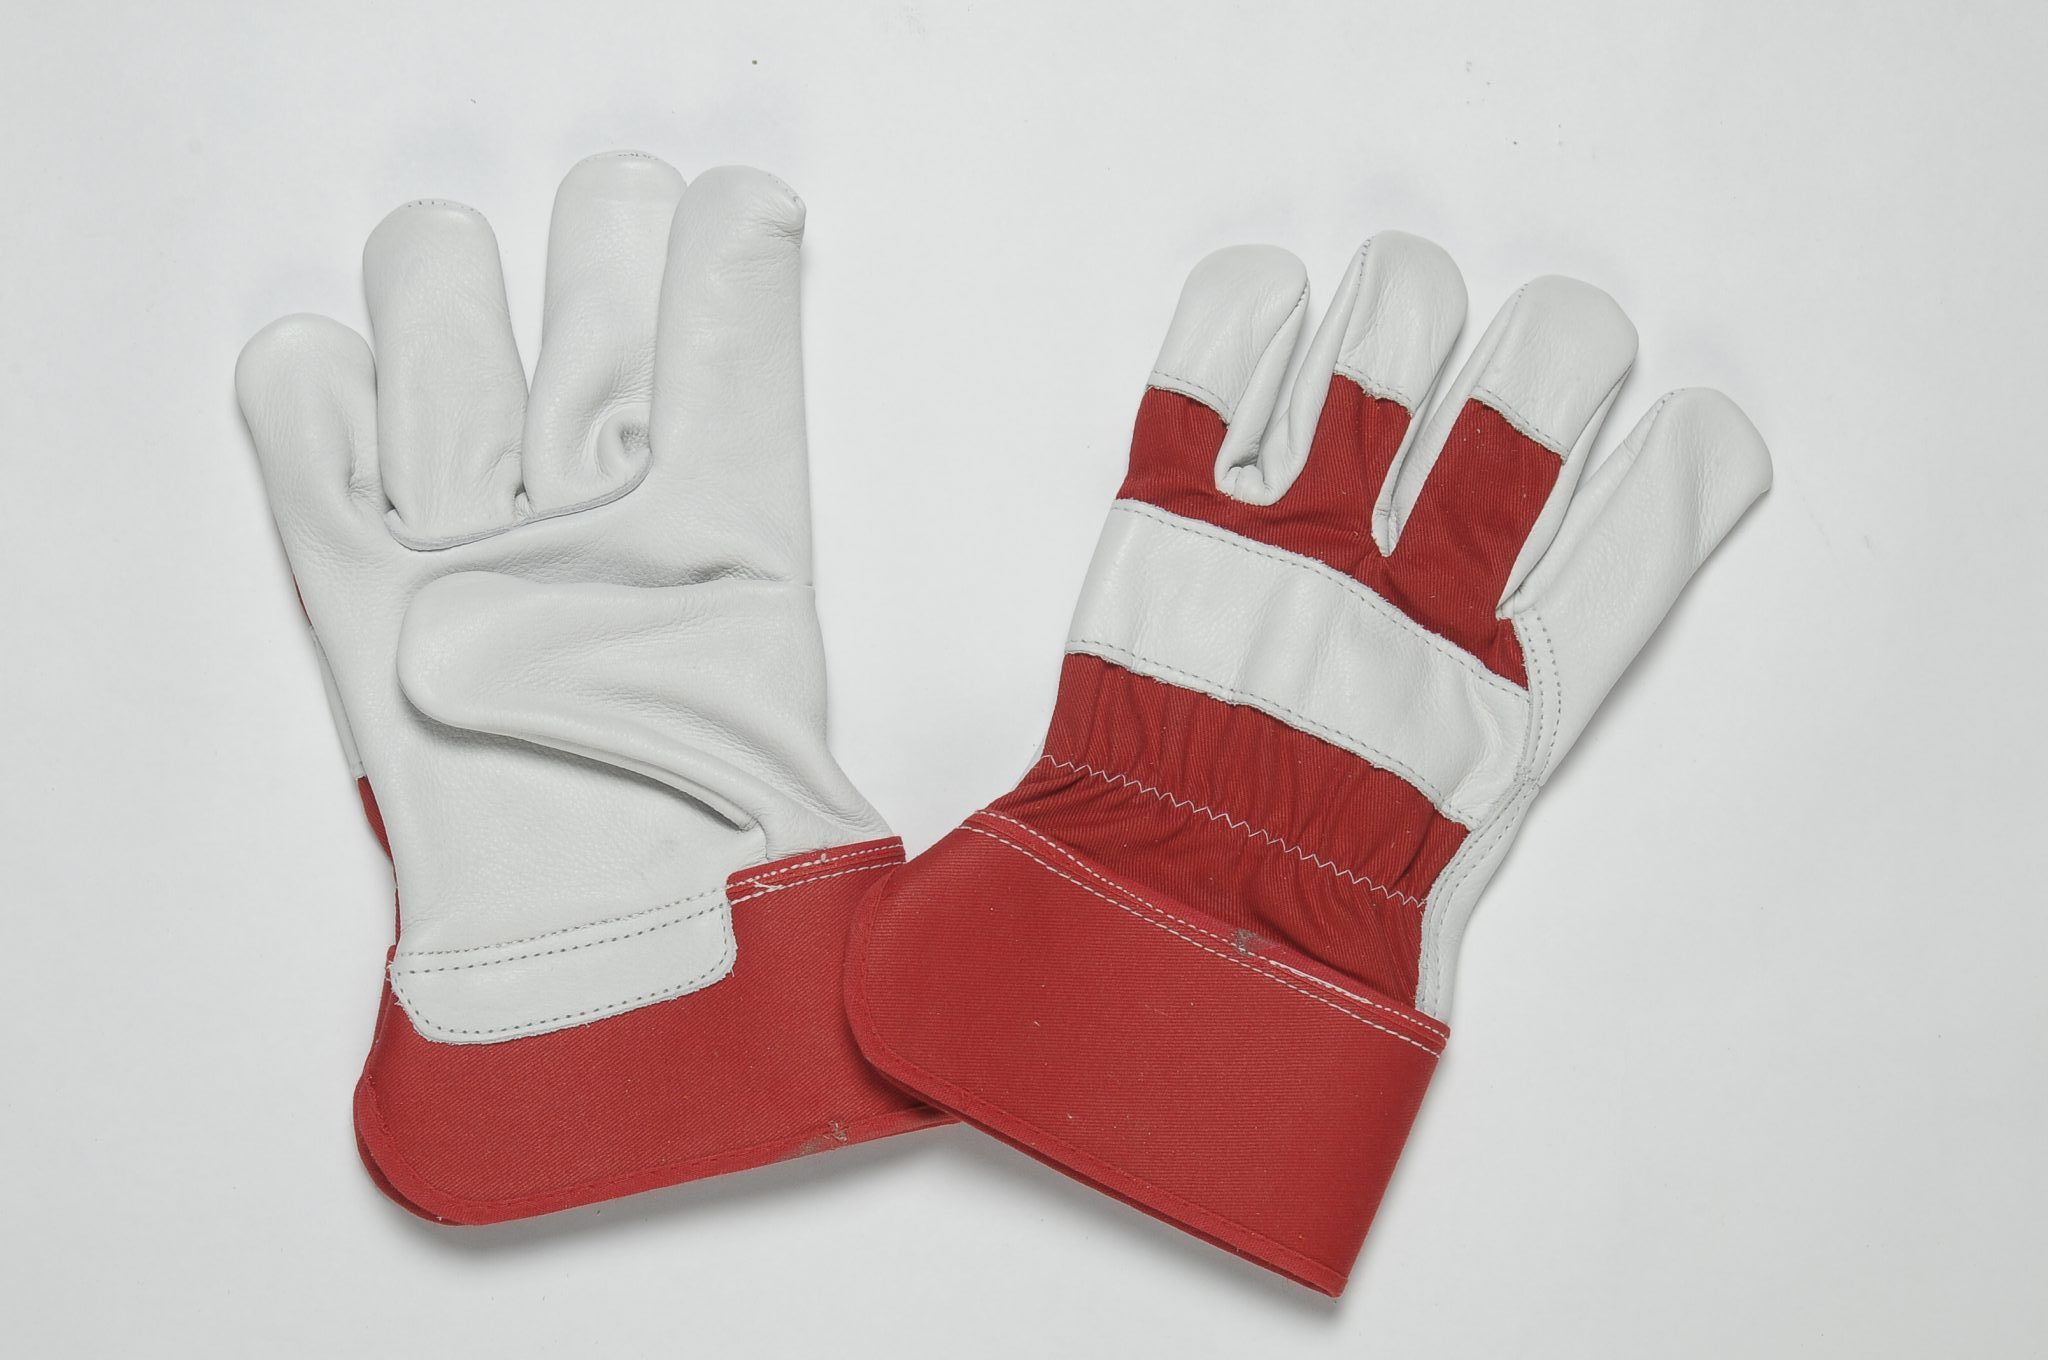 NATURAL GRAIN GLOVES. FLANNEL LINER IN THE PALM. RED CUFF & BACK. ADJUSTIBLE ELASTIC IN THE WRIST.